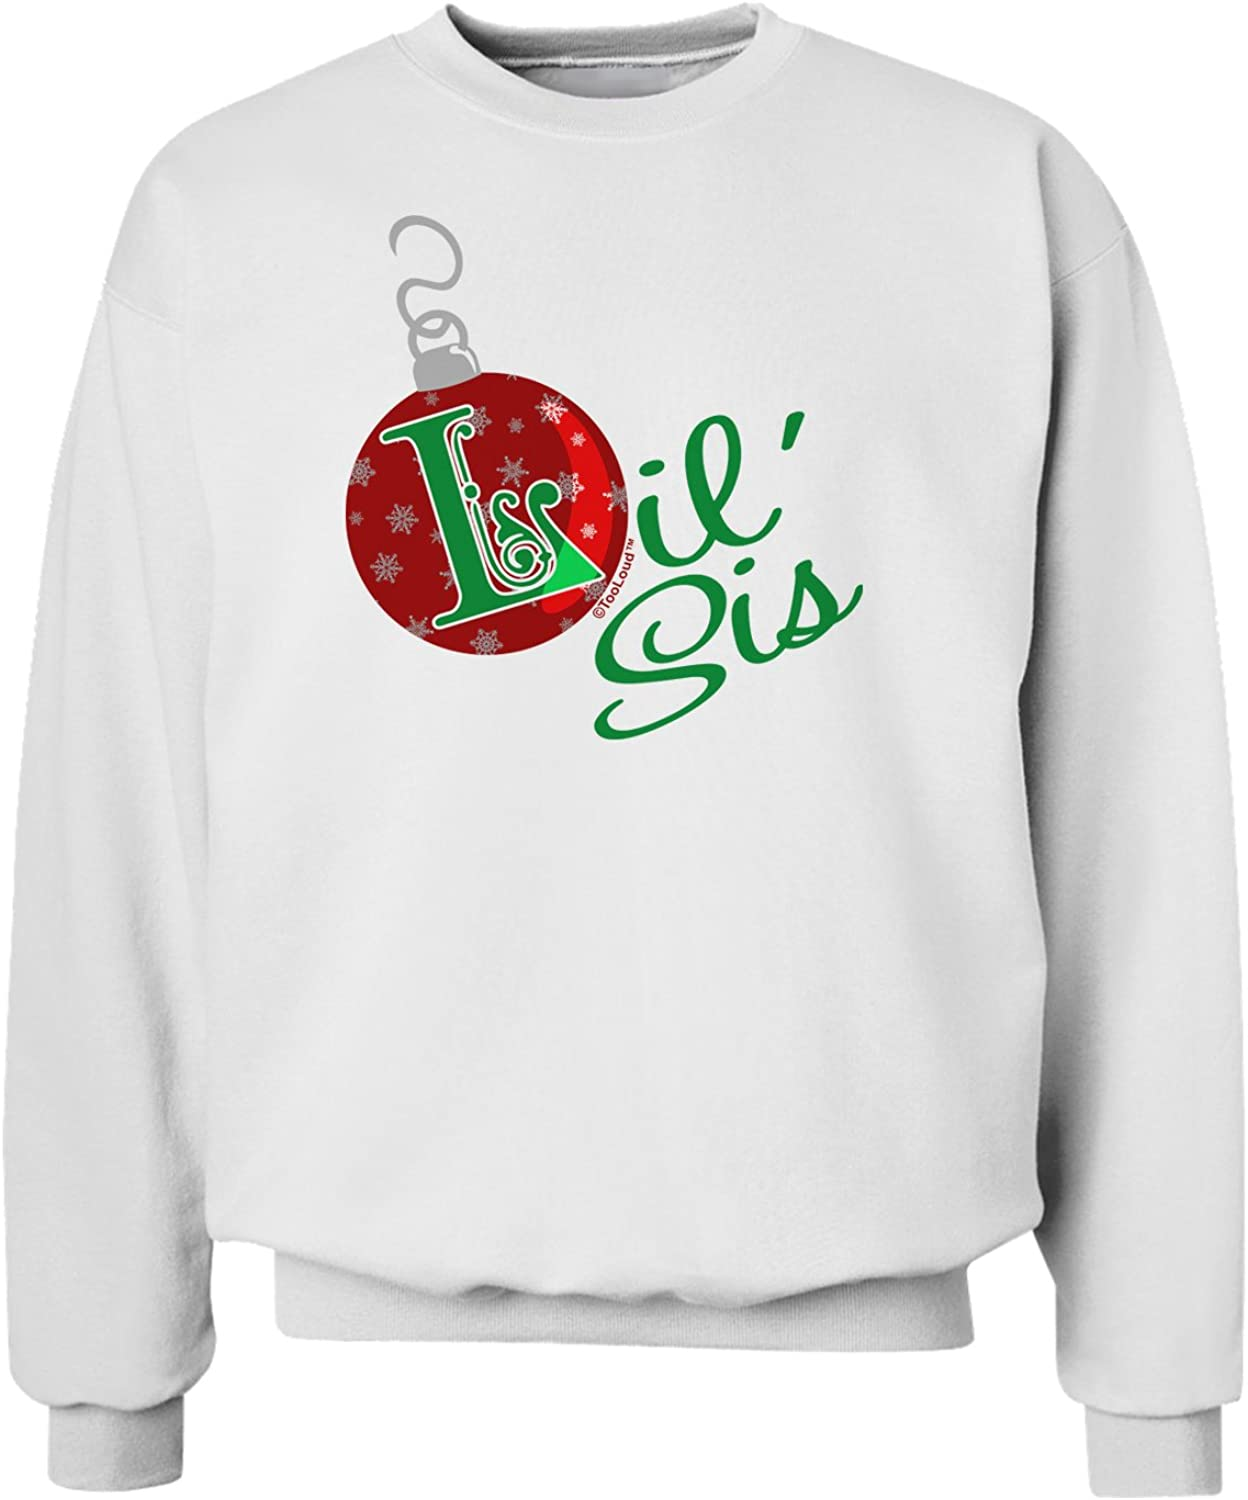 TooLoud Matching Family Ornament Lil Sis Sweatshirt